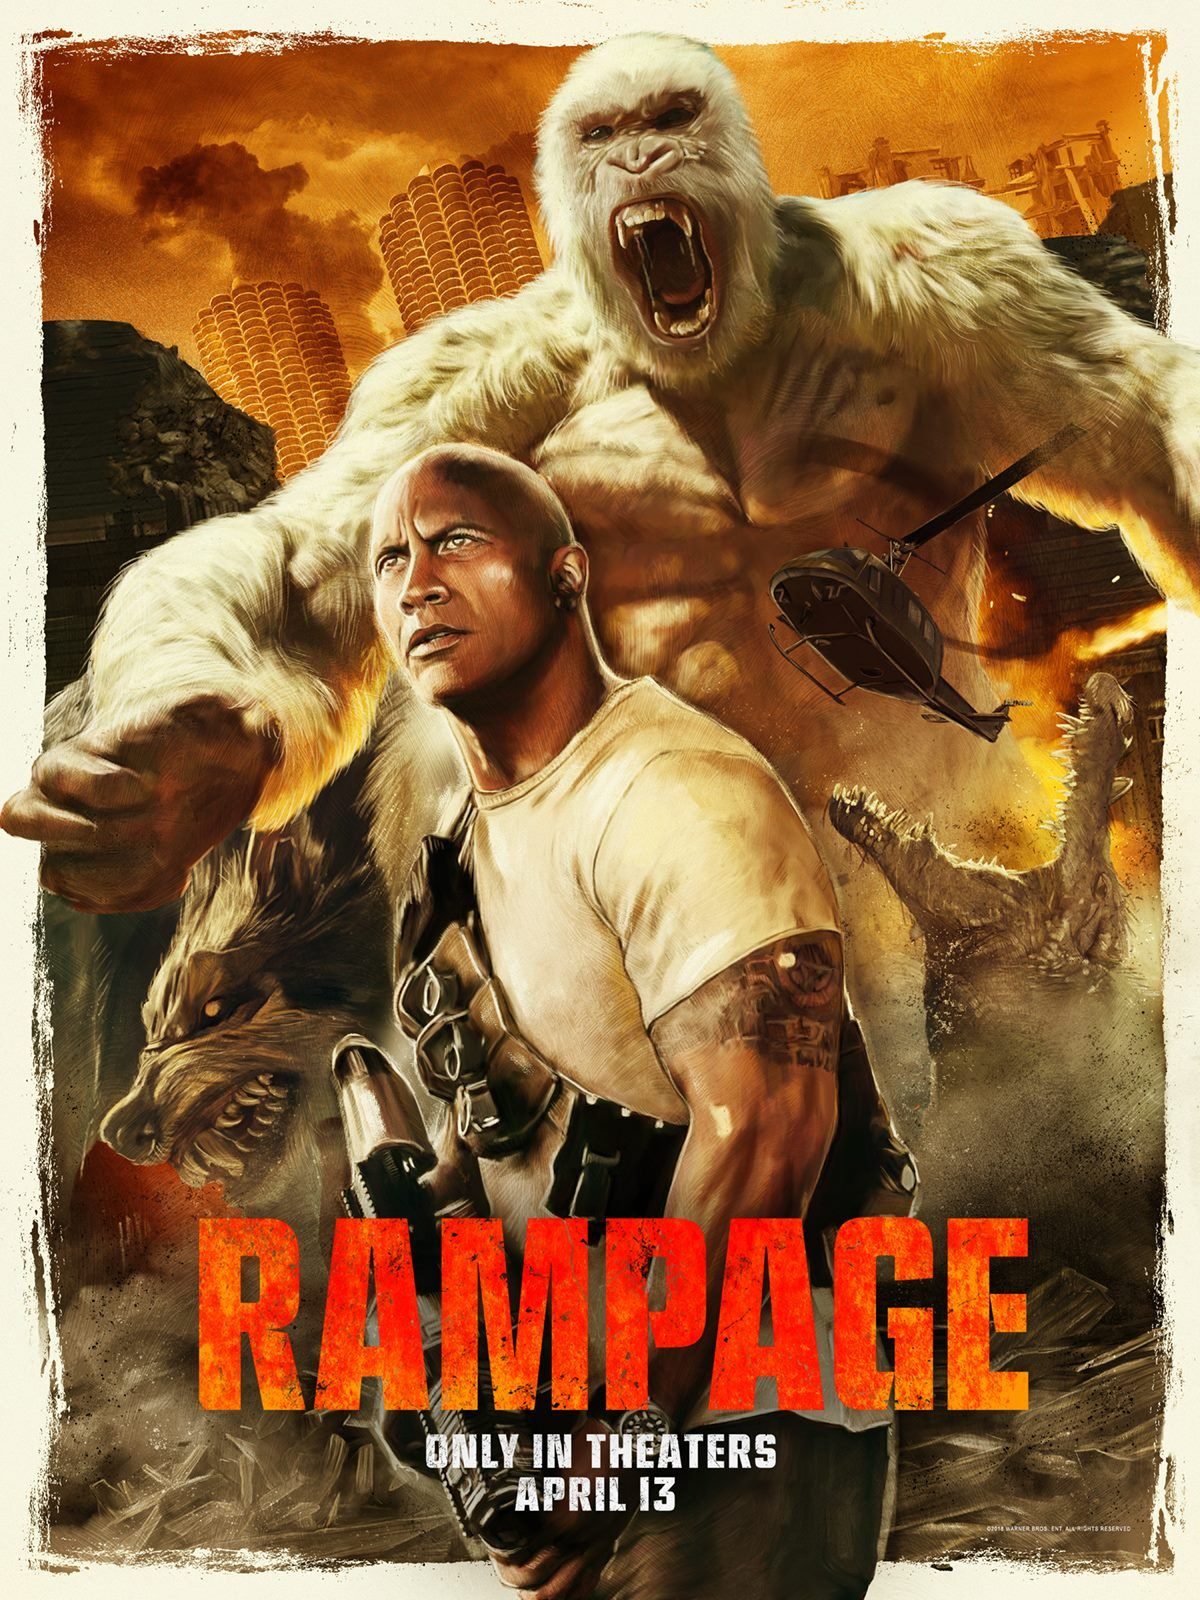 Rampage 3 New Artsy Posters Https Teaser Trailer Com Movie